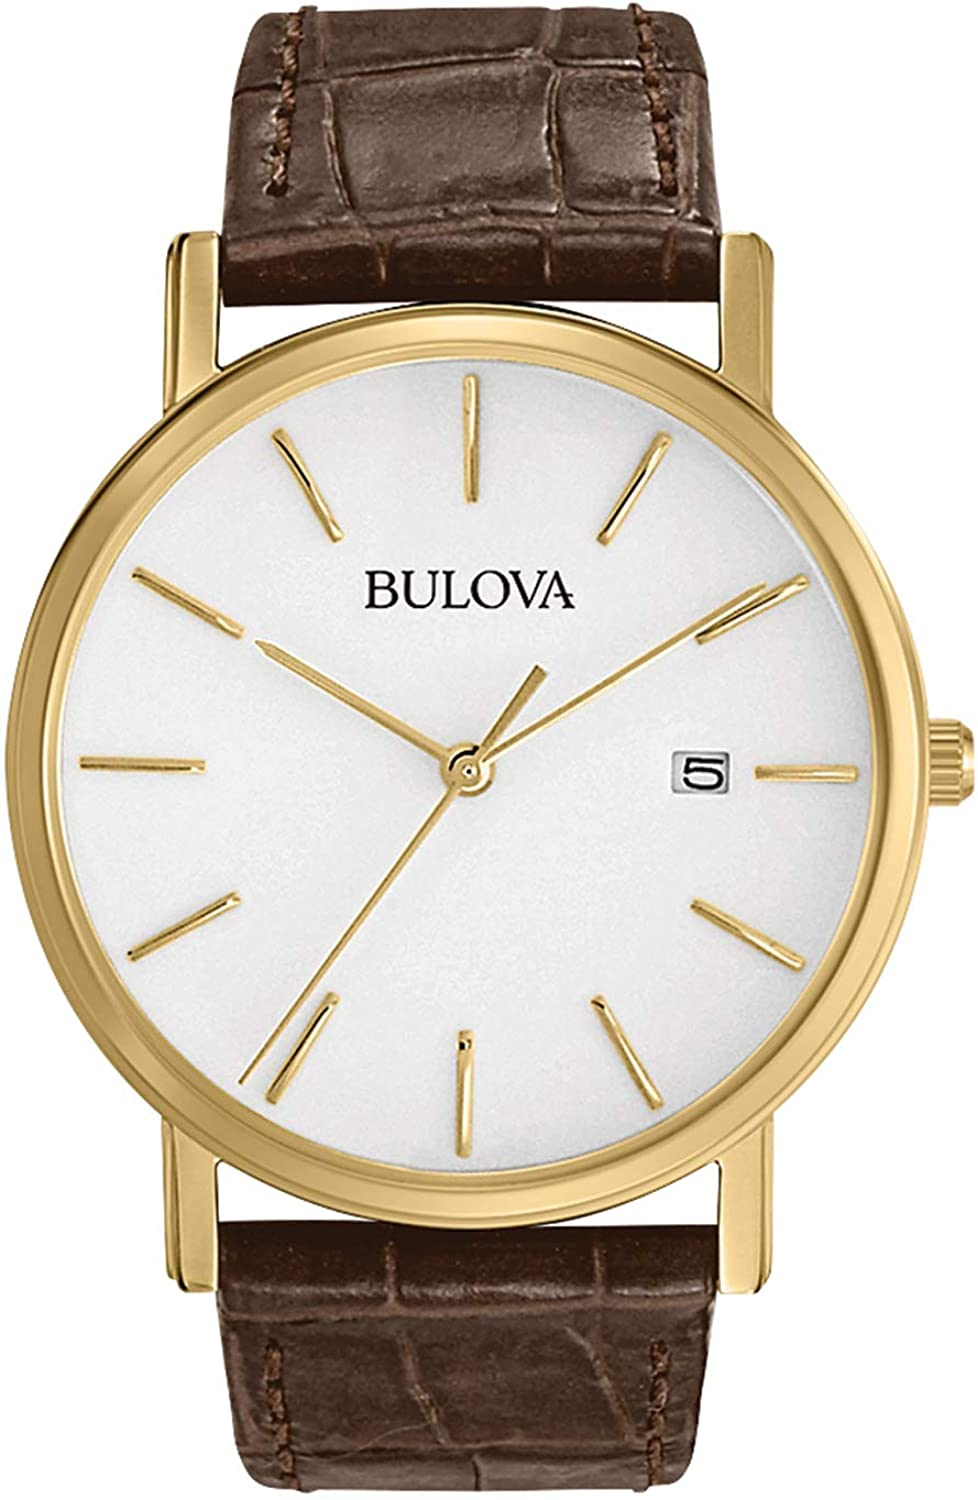 Bulova Men s 97B100 Classic Gold-Tone Stainless Steel Watch With Brown Leather Band